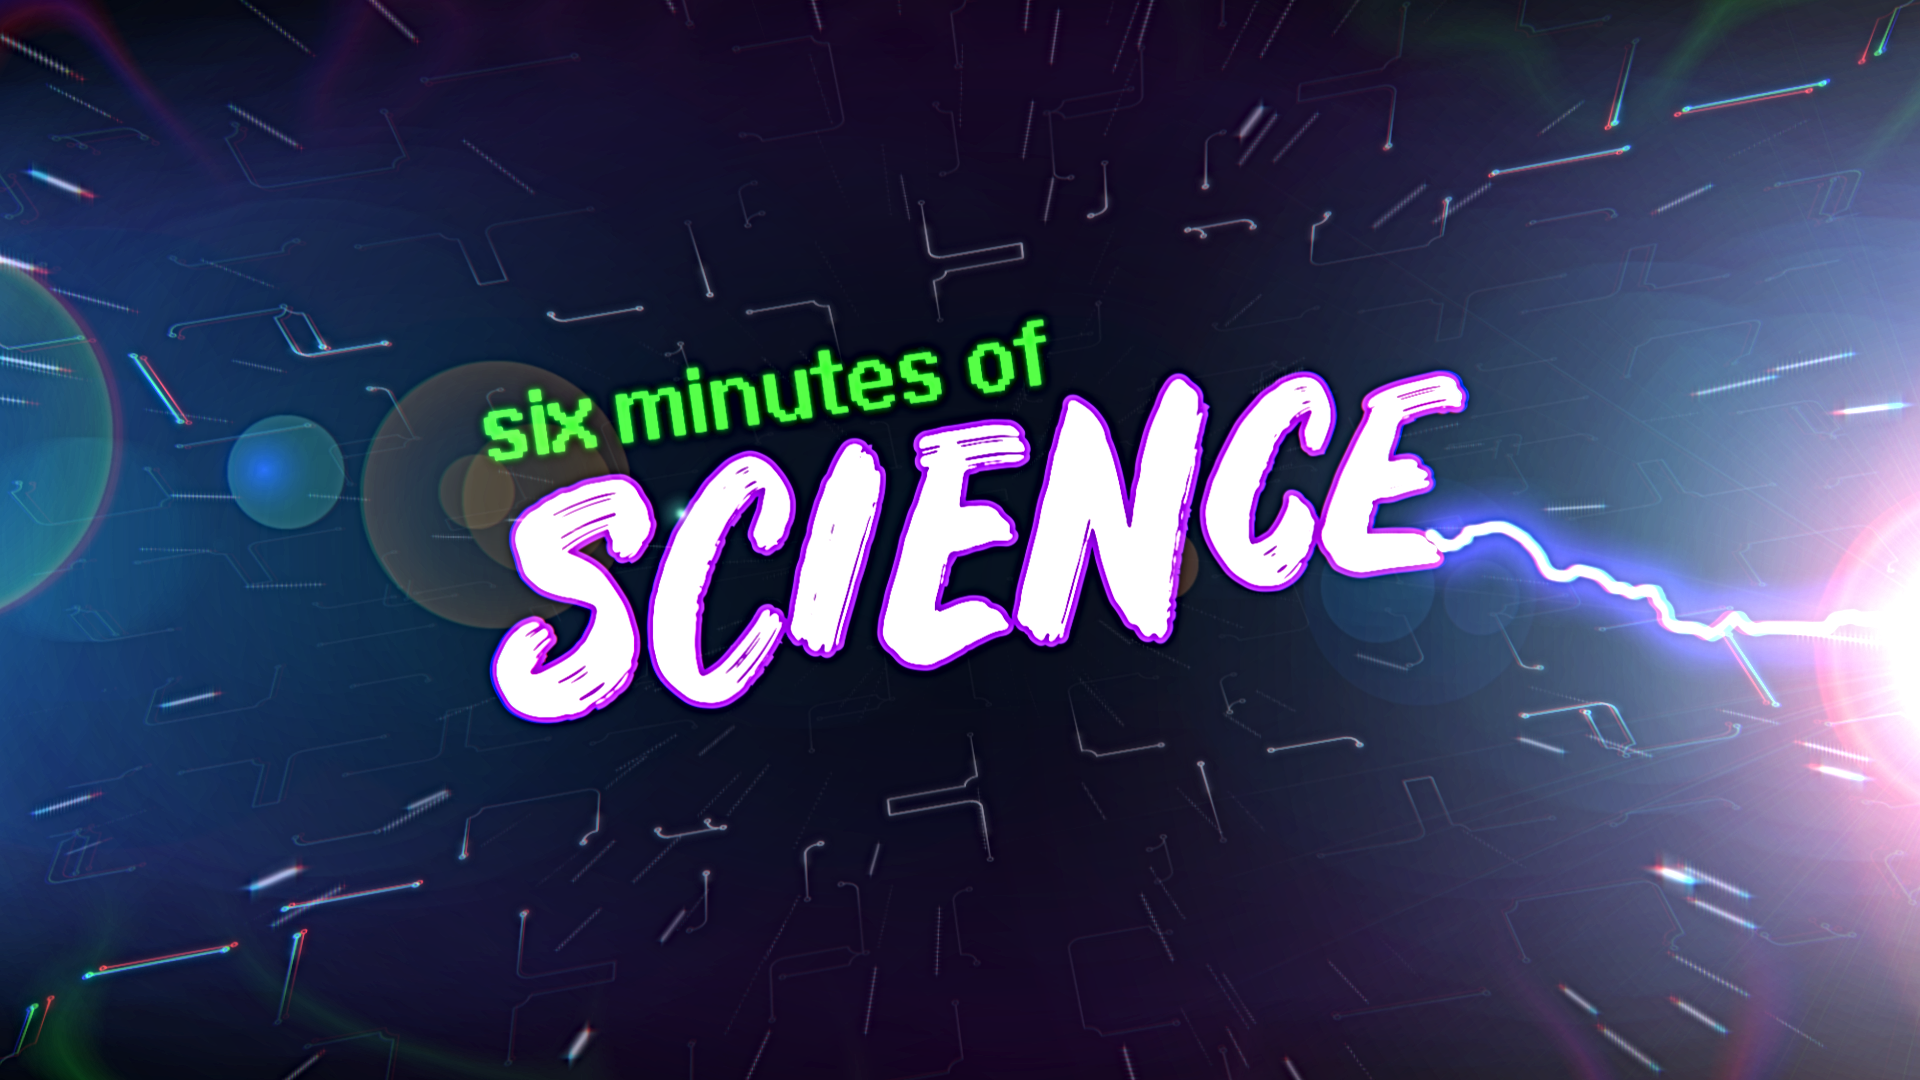 Six Minutes of Science : LINK COMING SOON